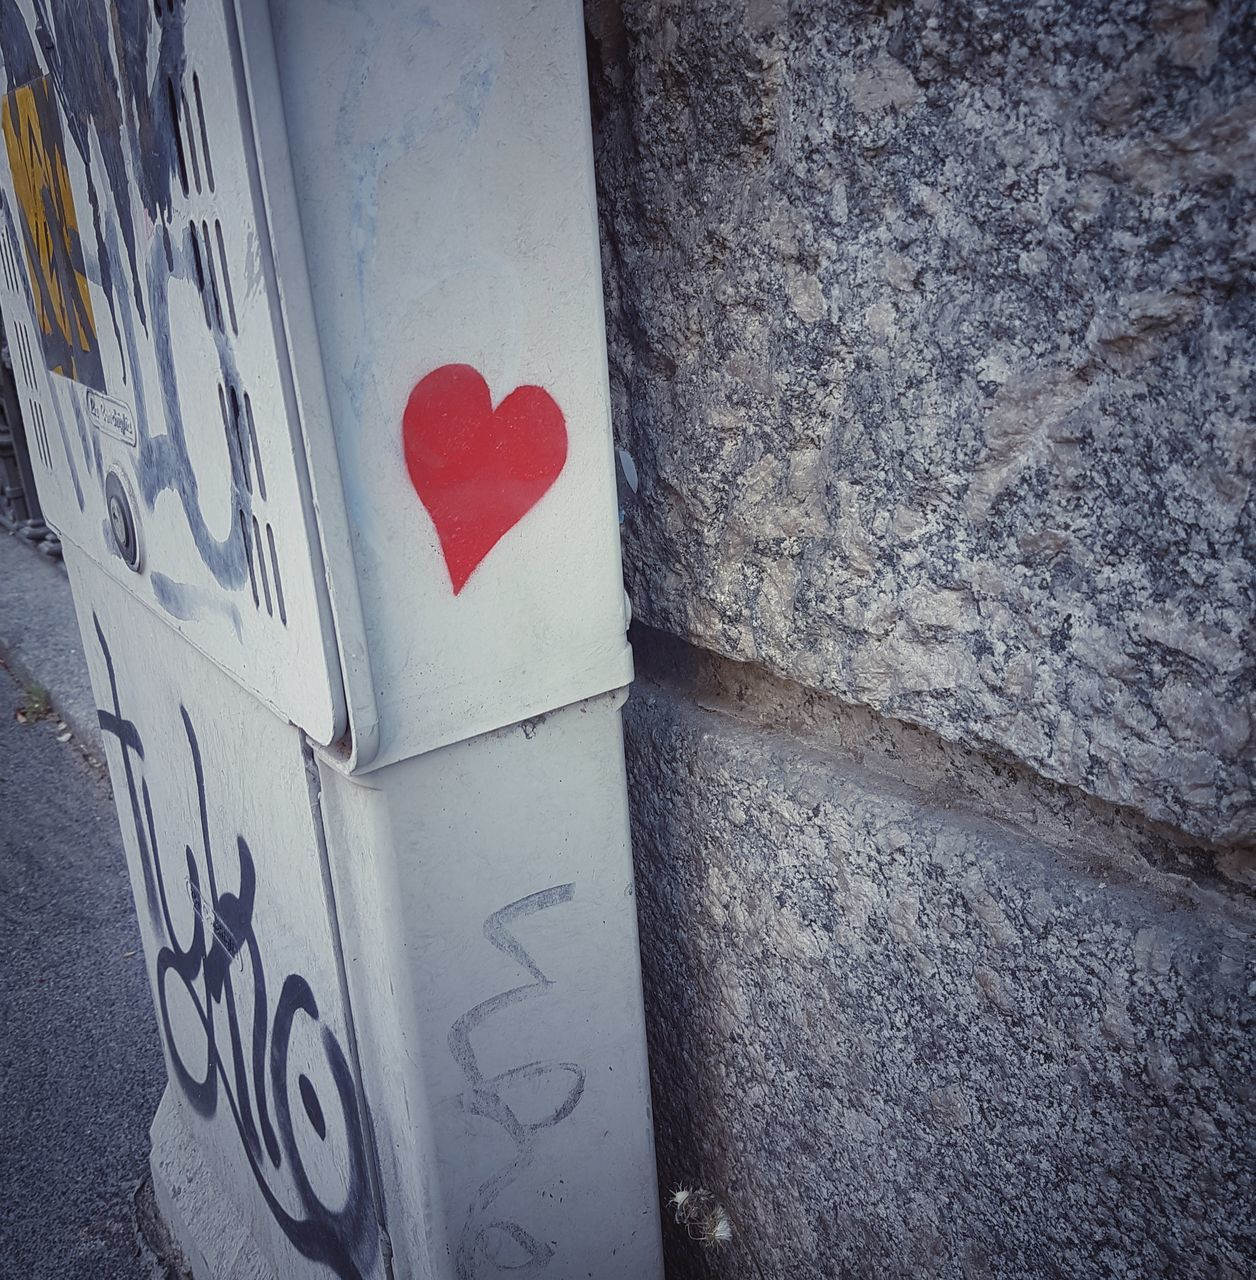 heart shape, love, no people, day, communication, outdoors, red, close-up, architecture